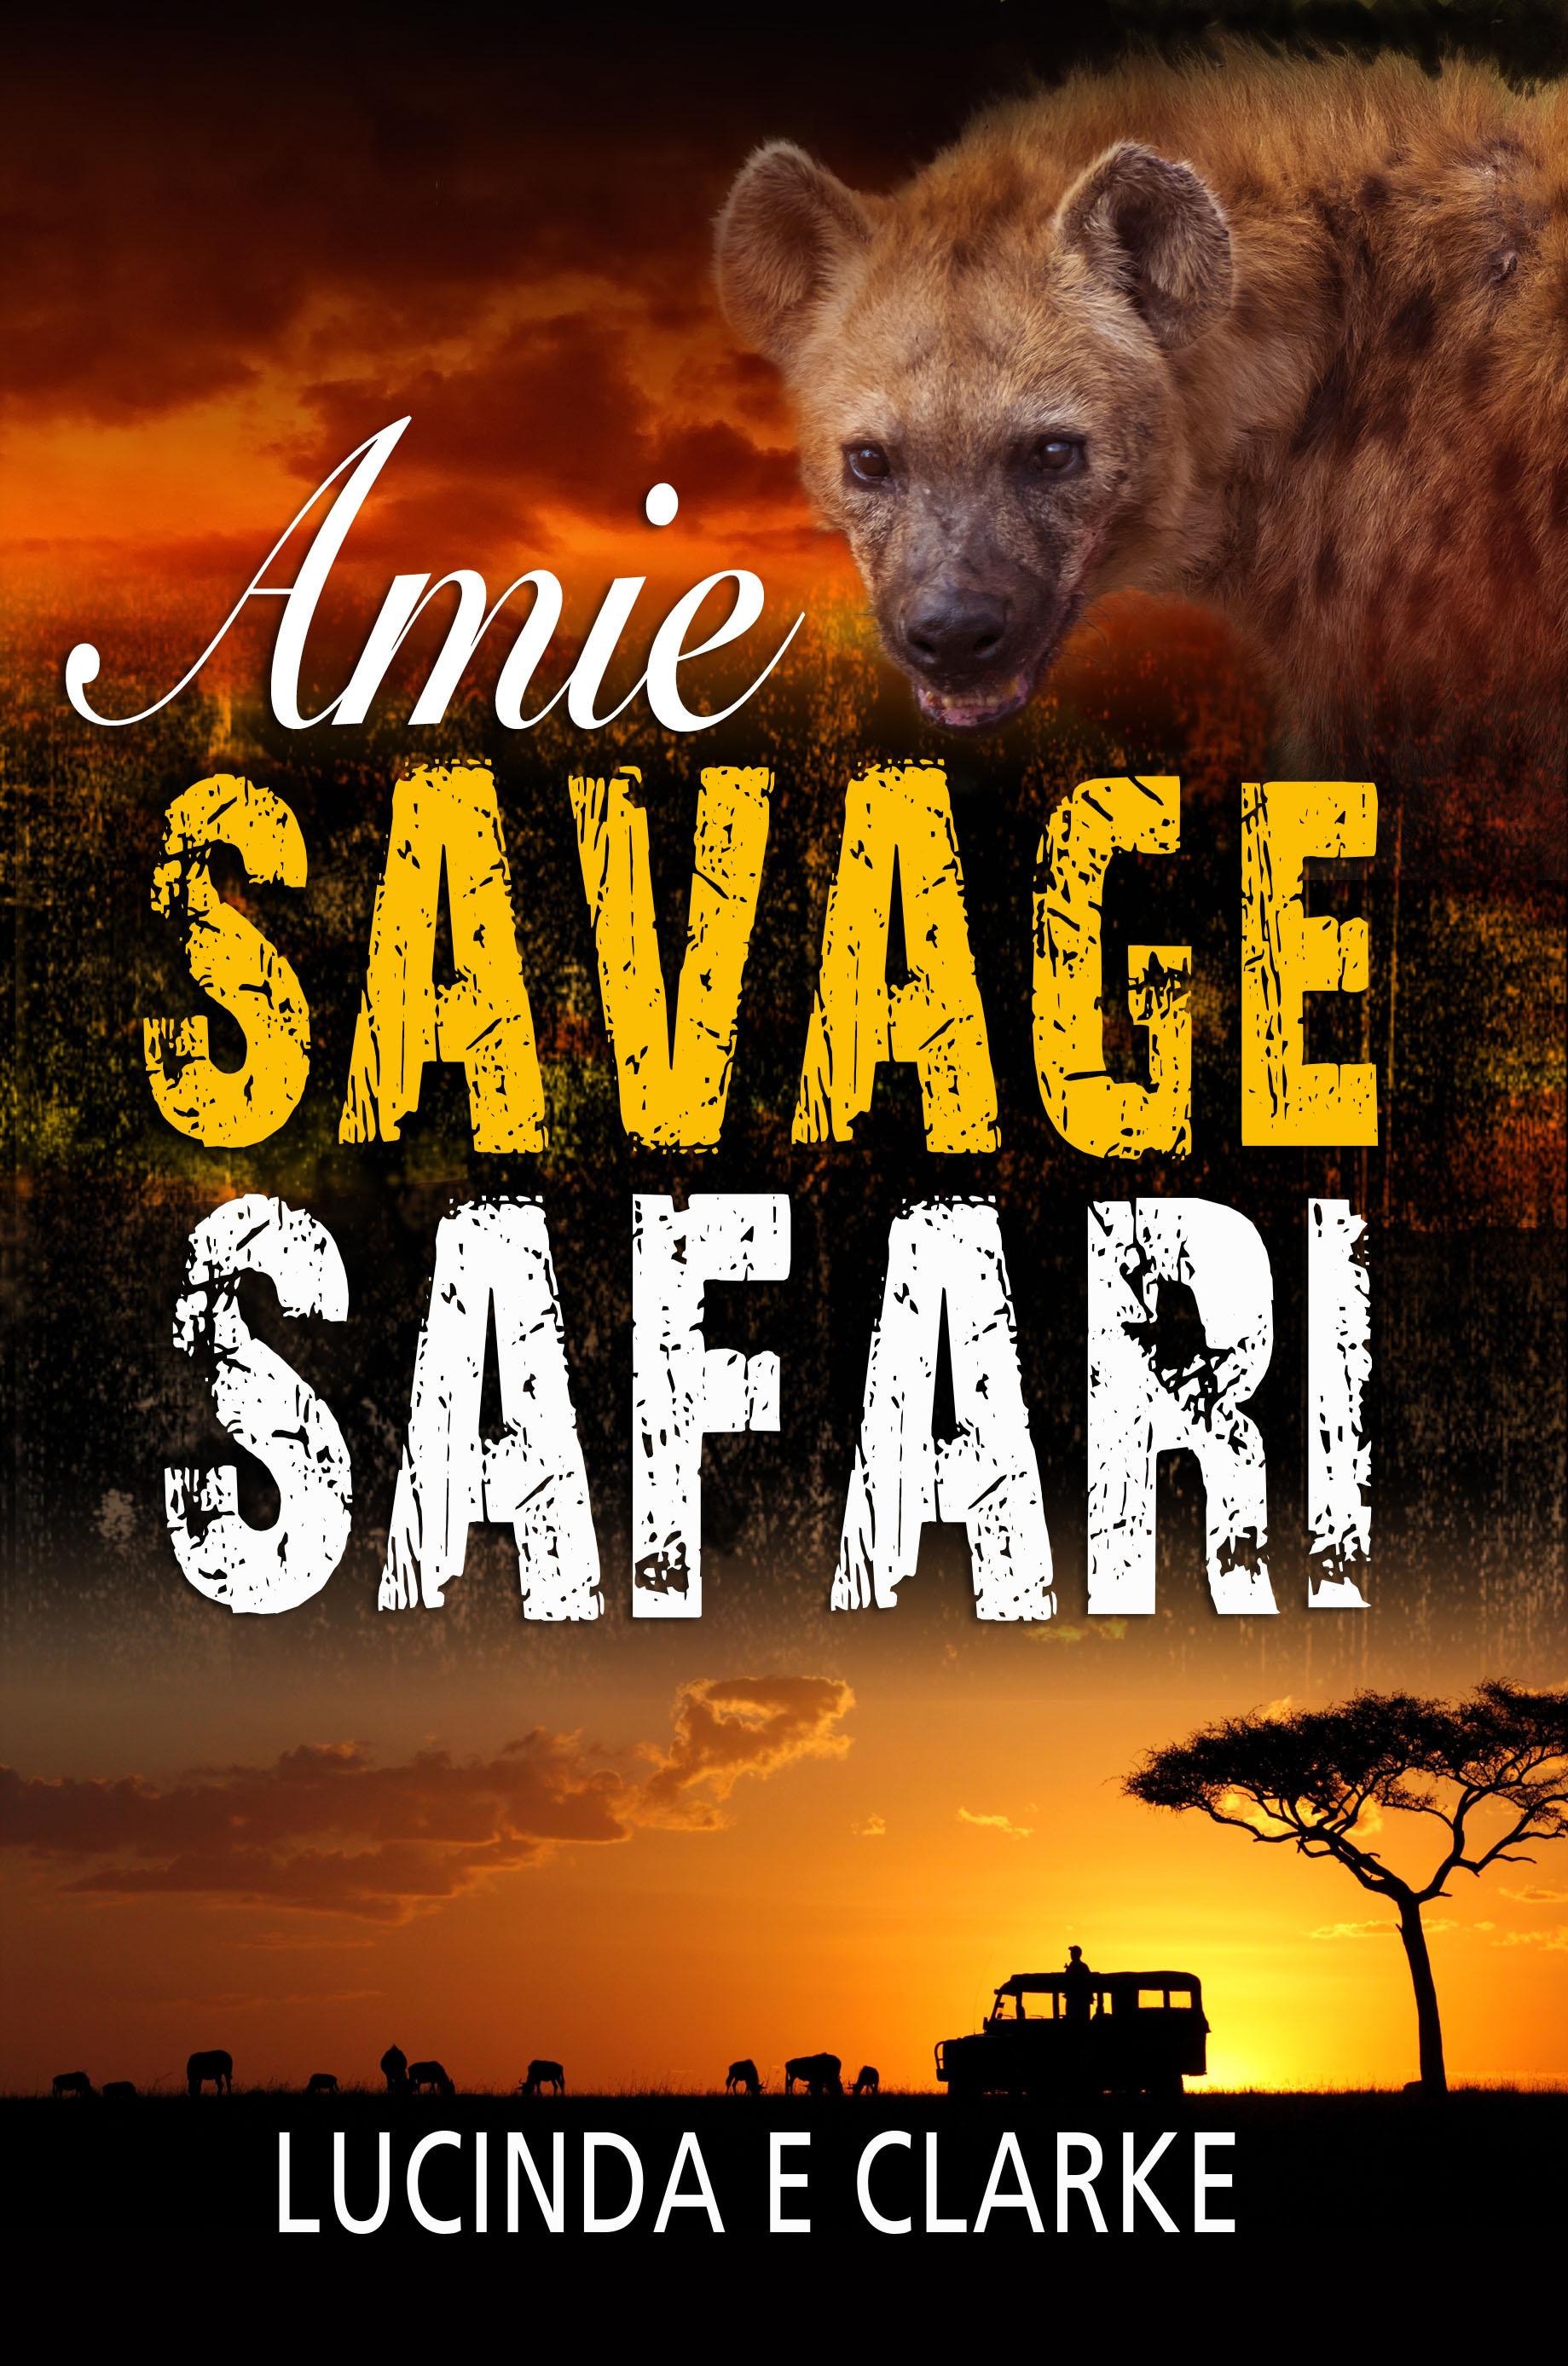 Amie 5 Front cover v3 small